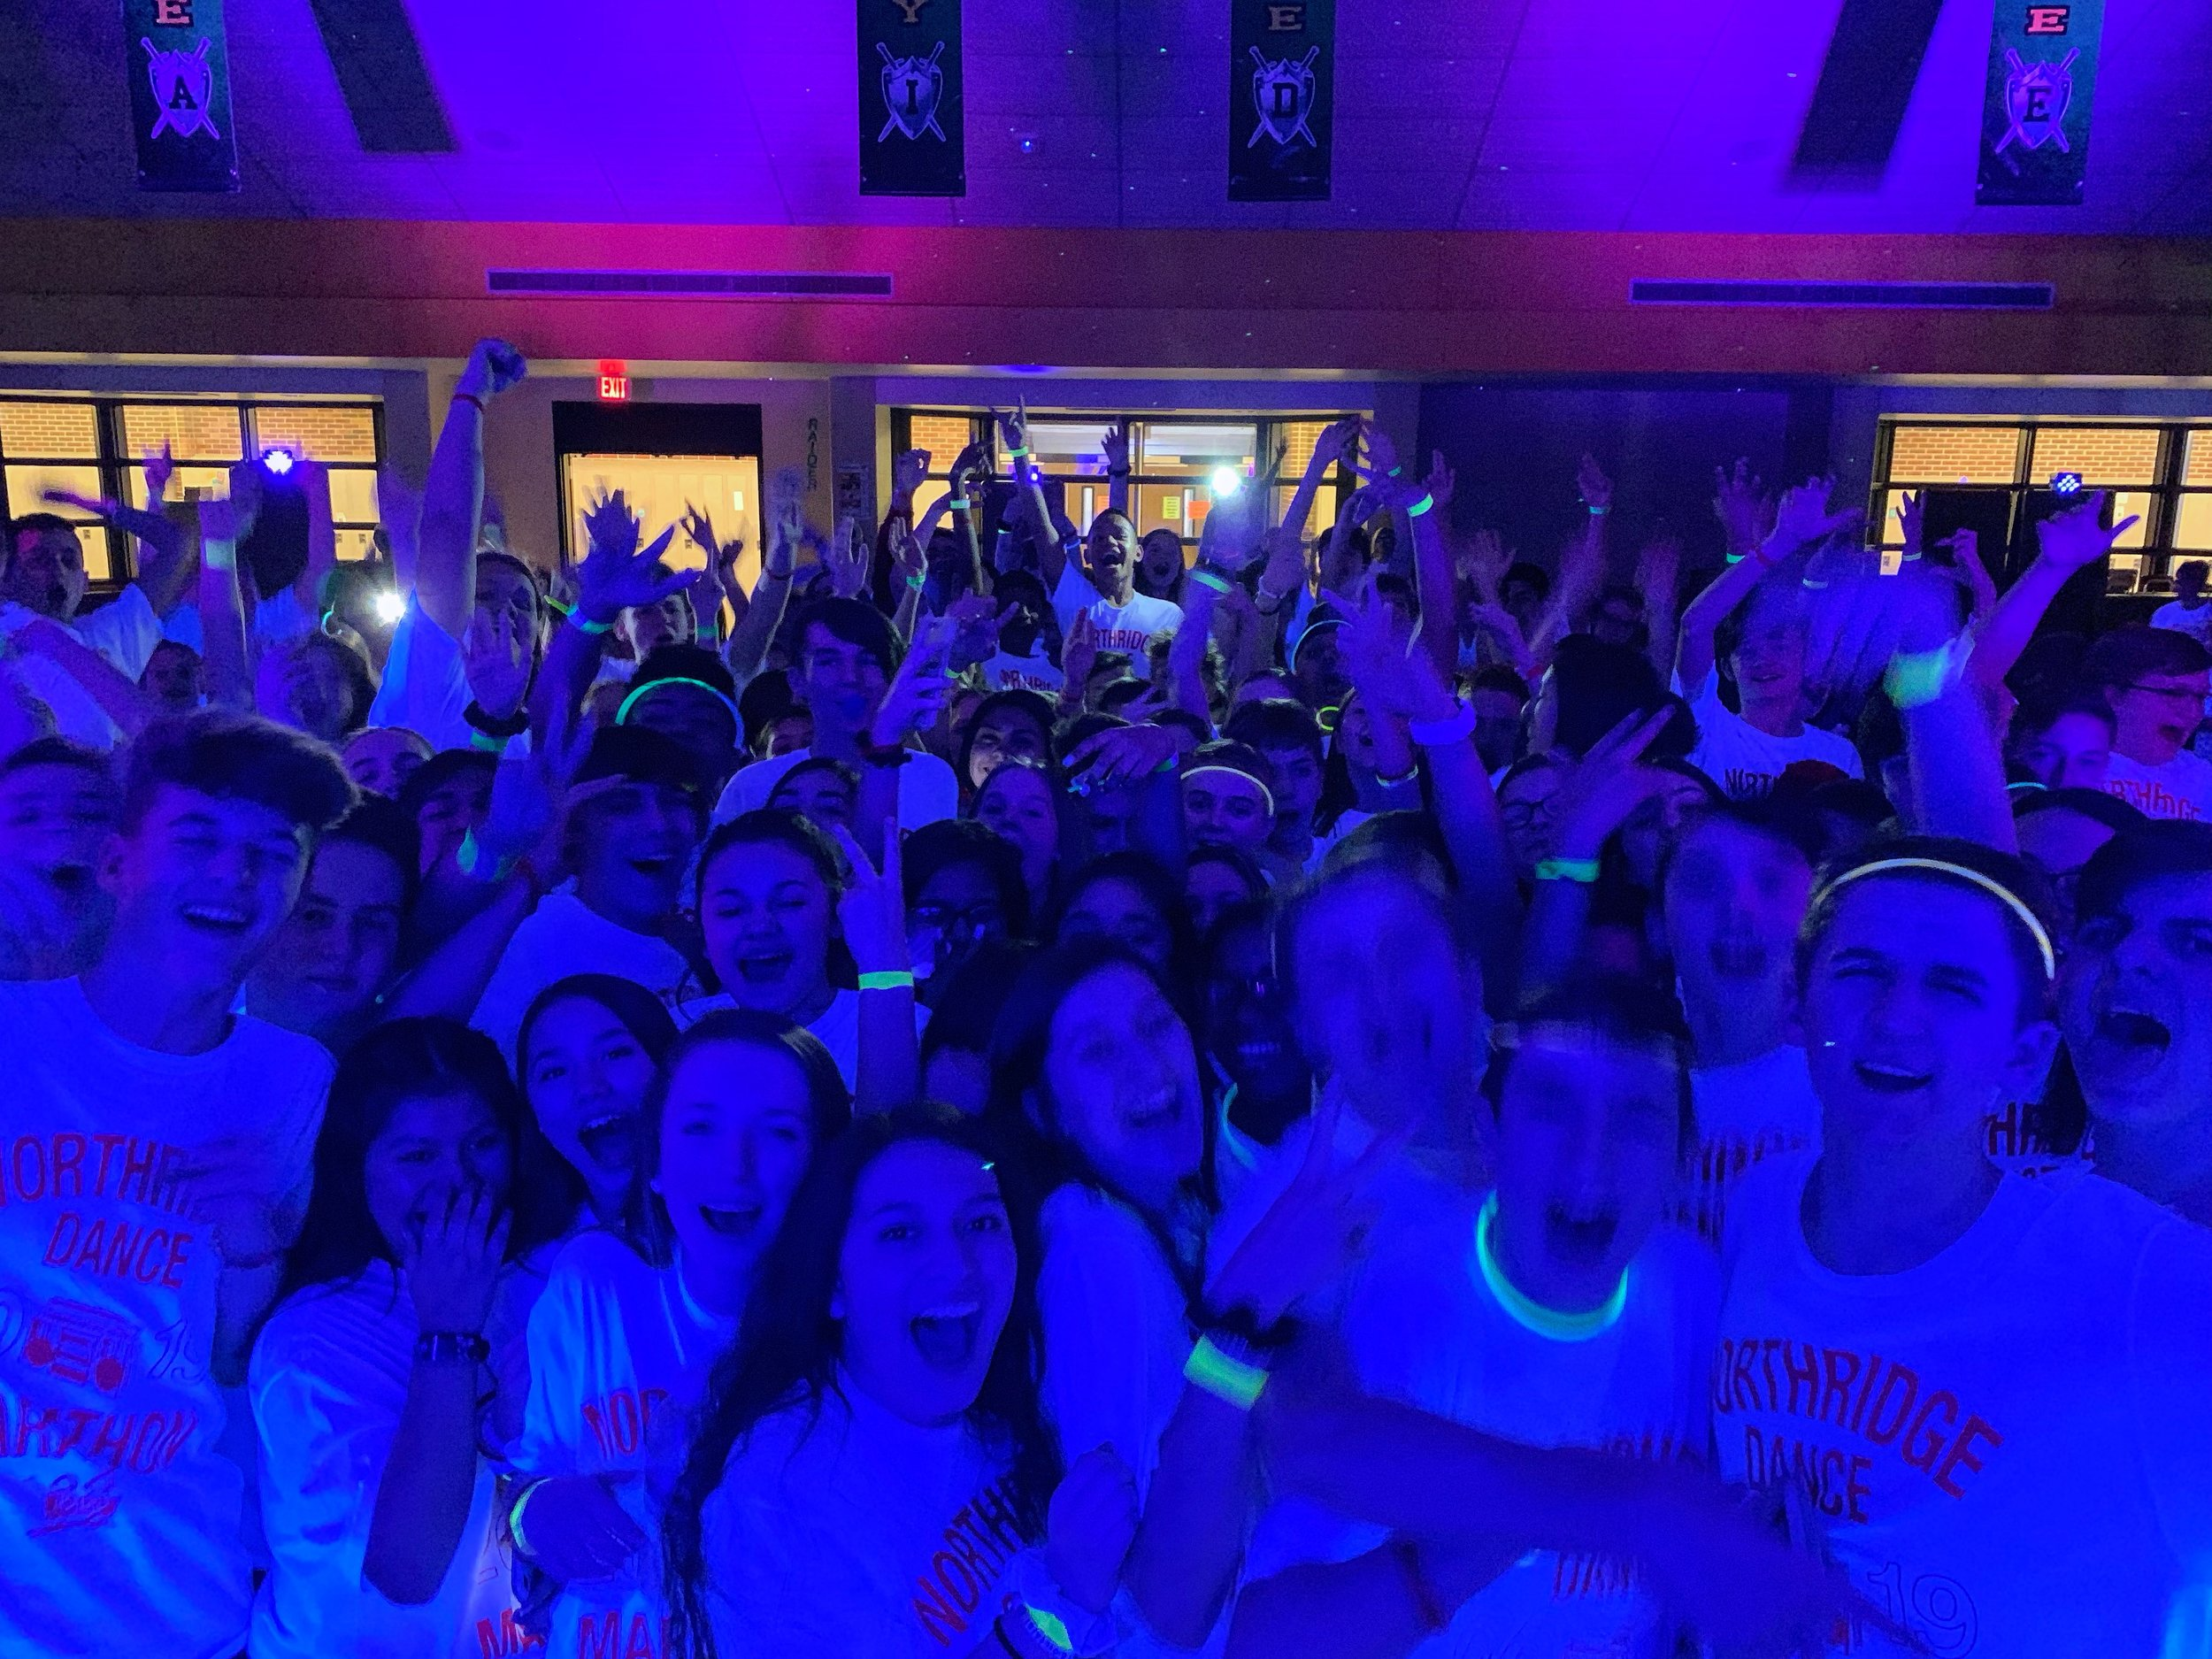 Indiana School Dance DJ Blacklight Party